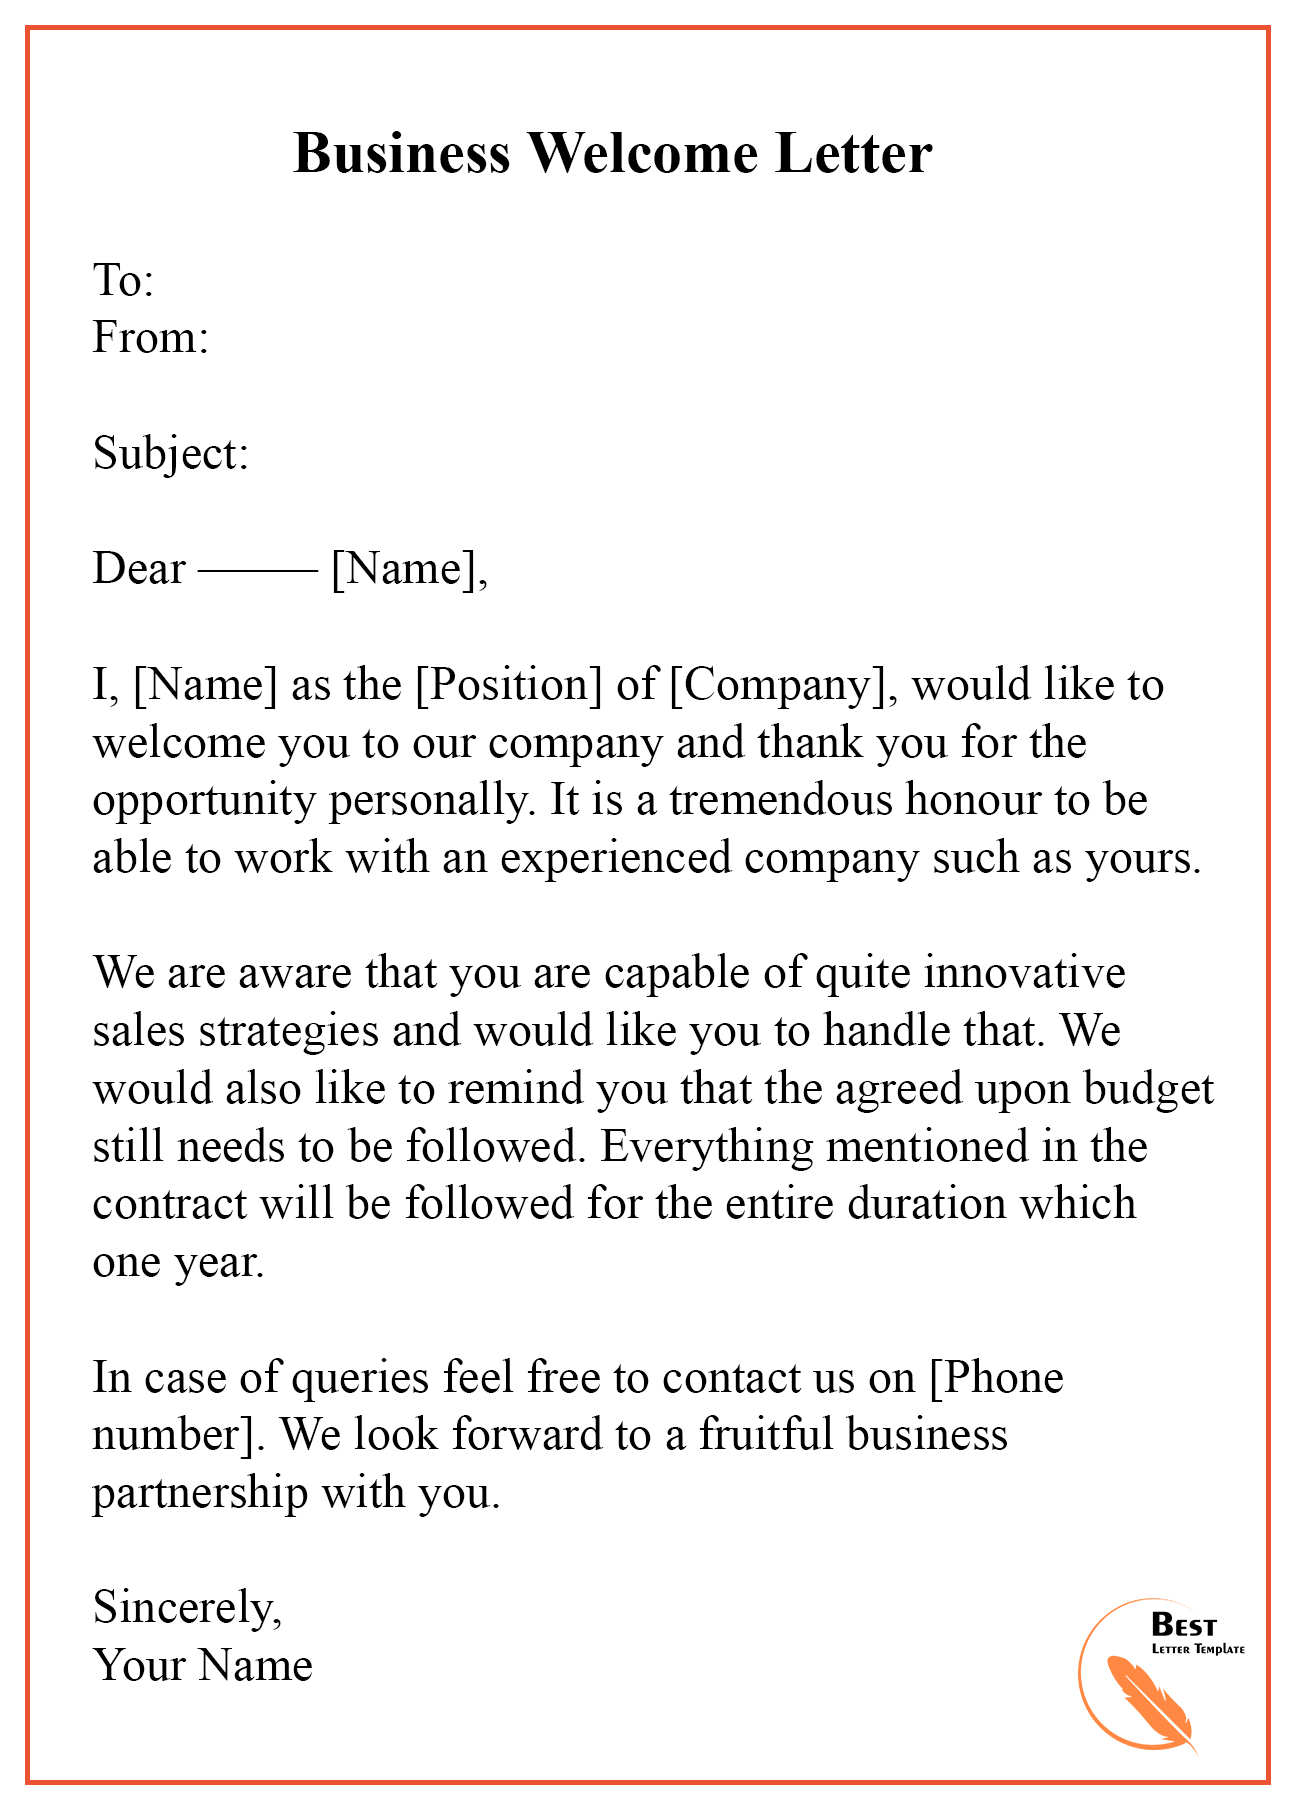 welcome letter template  u2013 format  sample  u0026 example